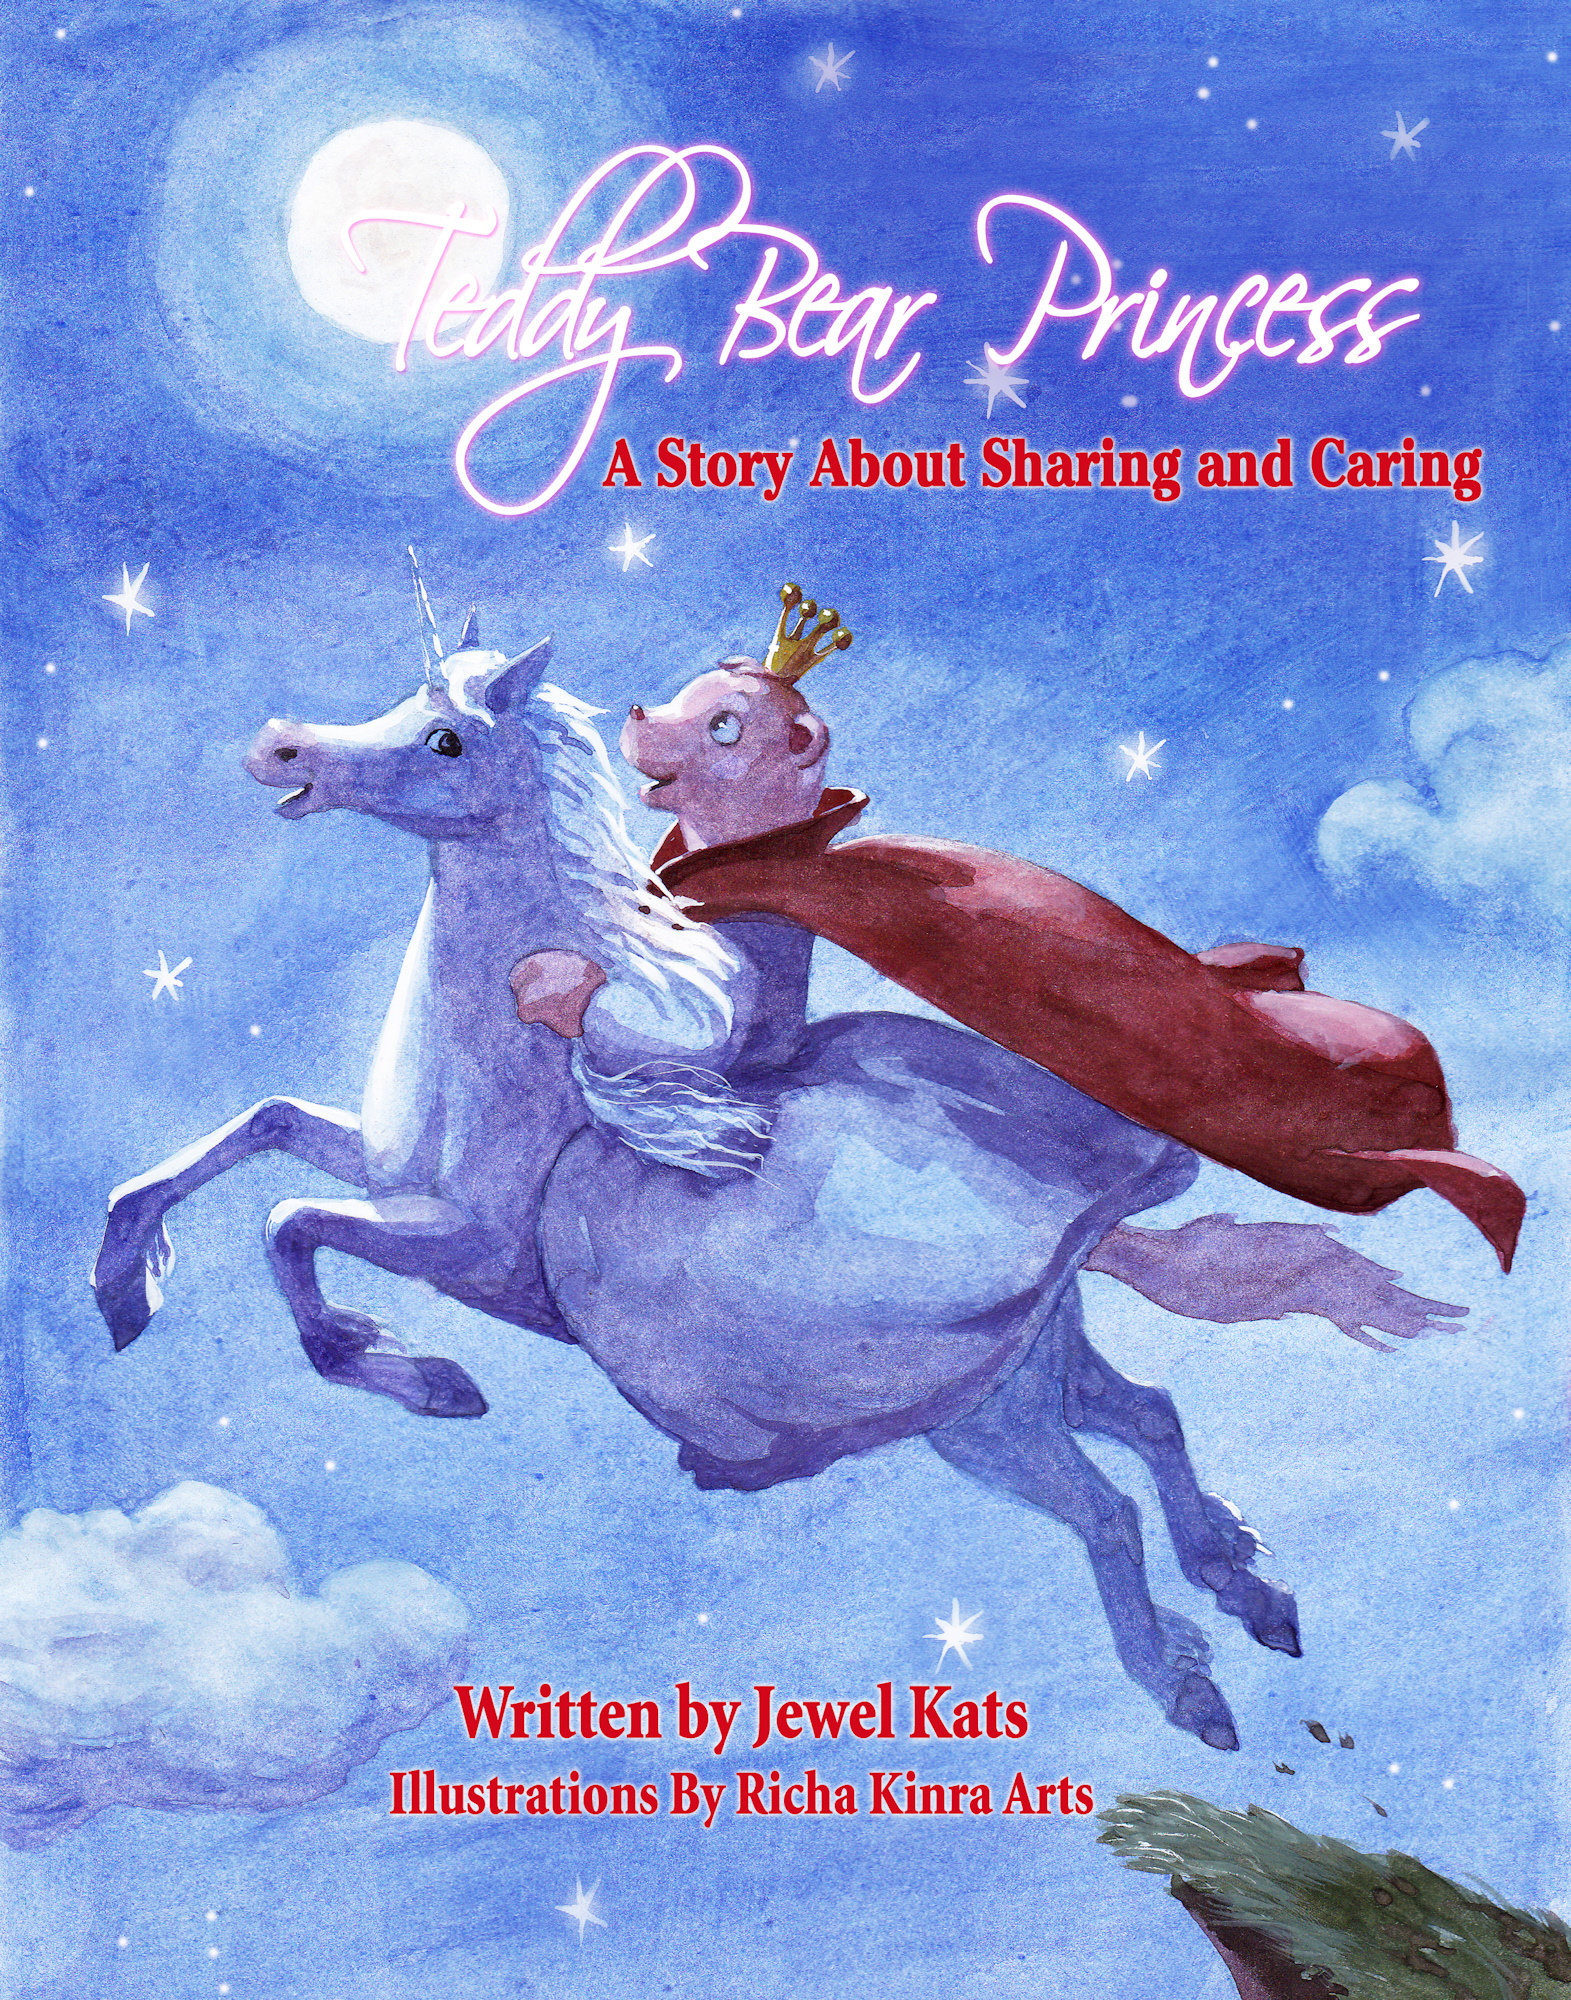 Teddy Bear Princess: A Story about Sharing and Caring 978-1-61599-163-1